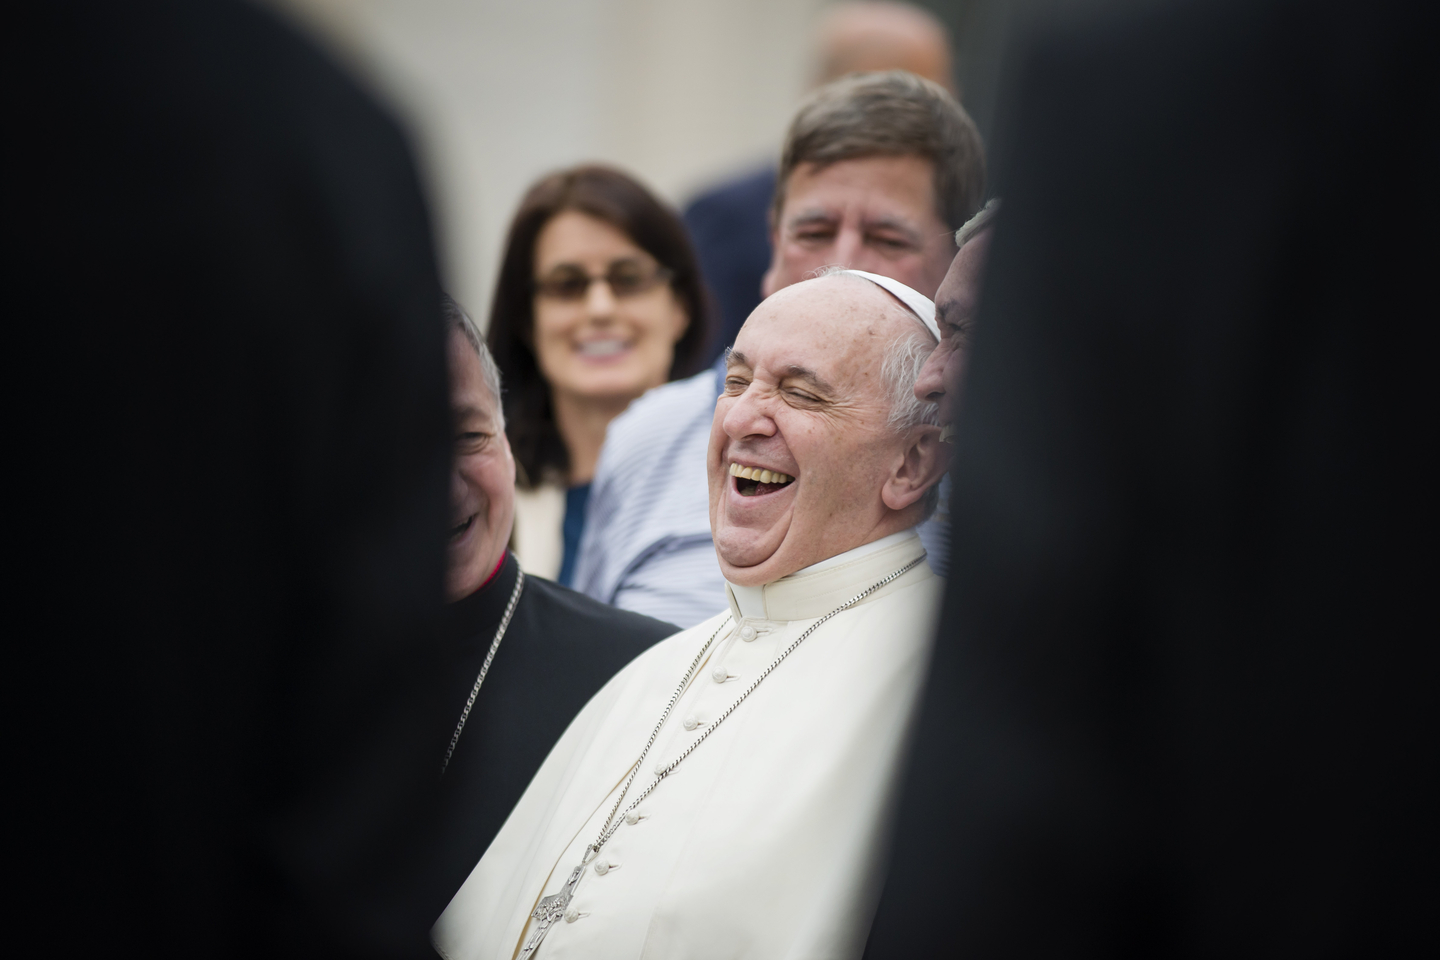 Pope Francis laughs